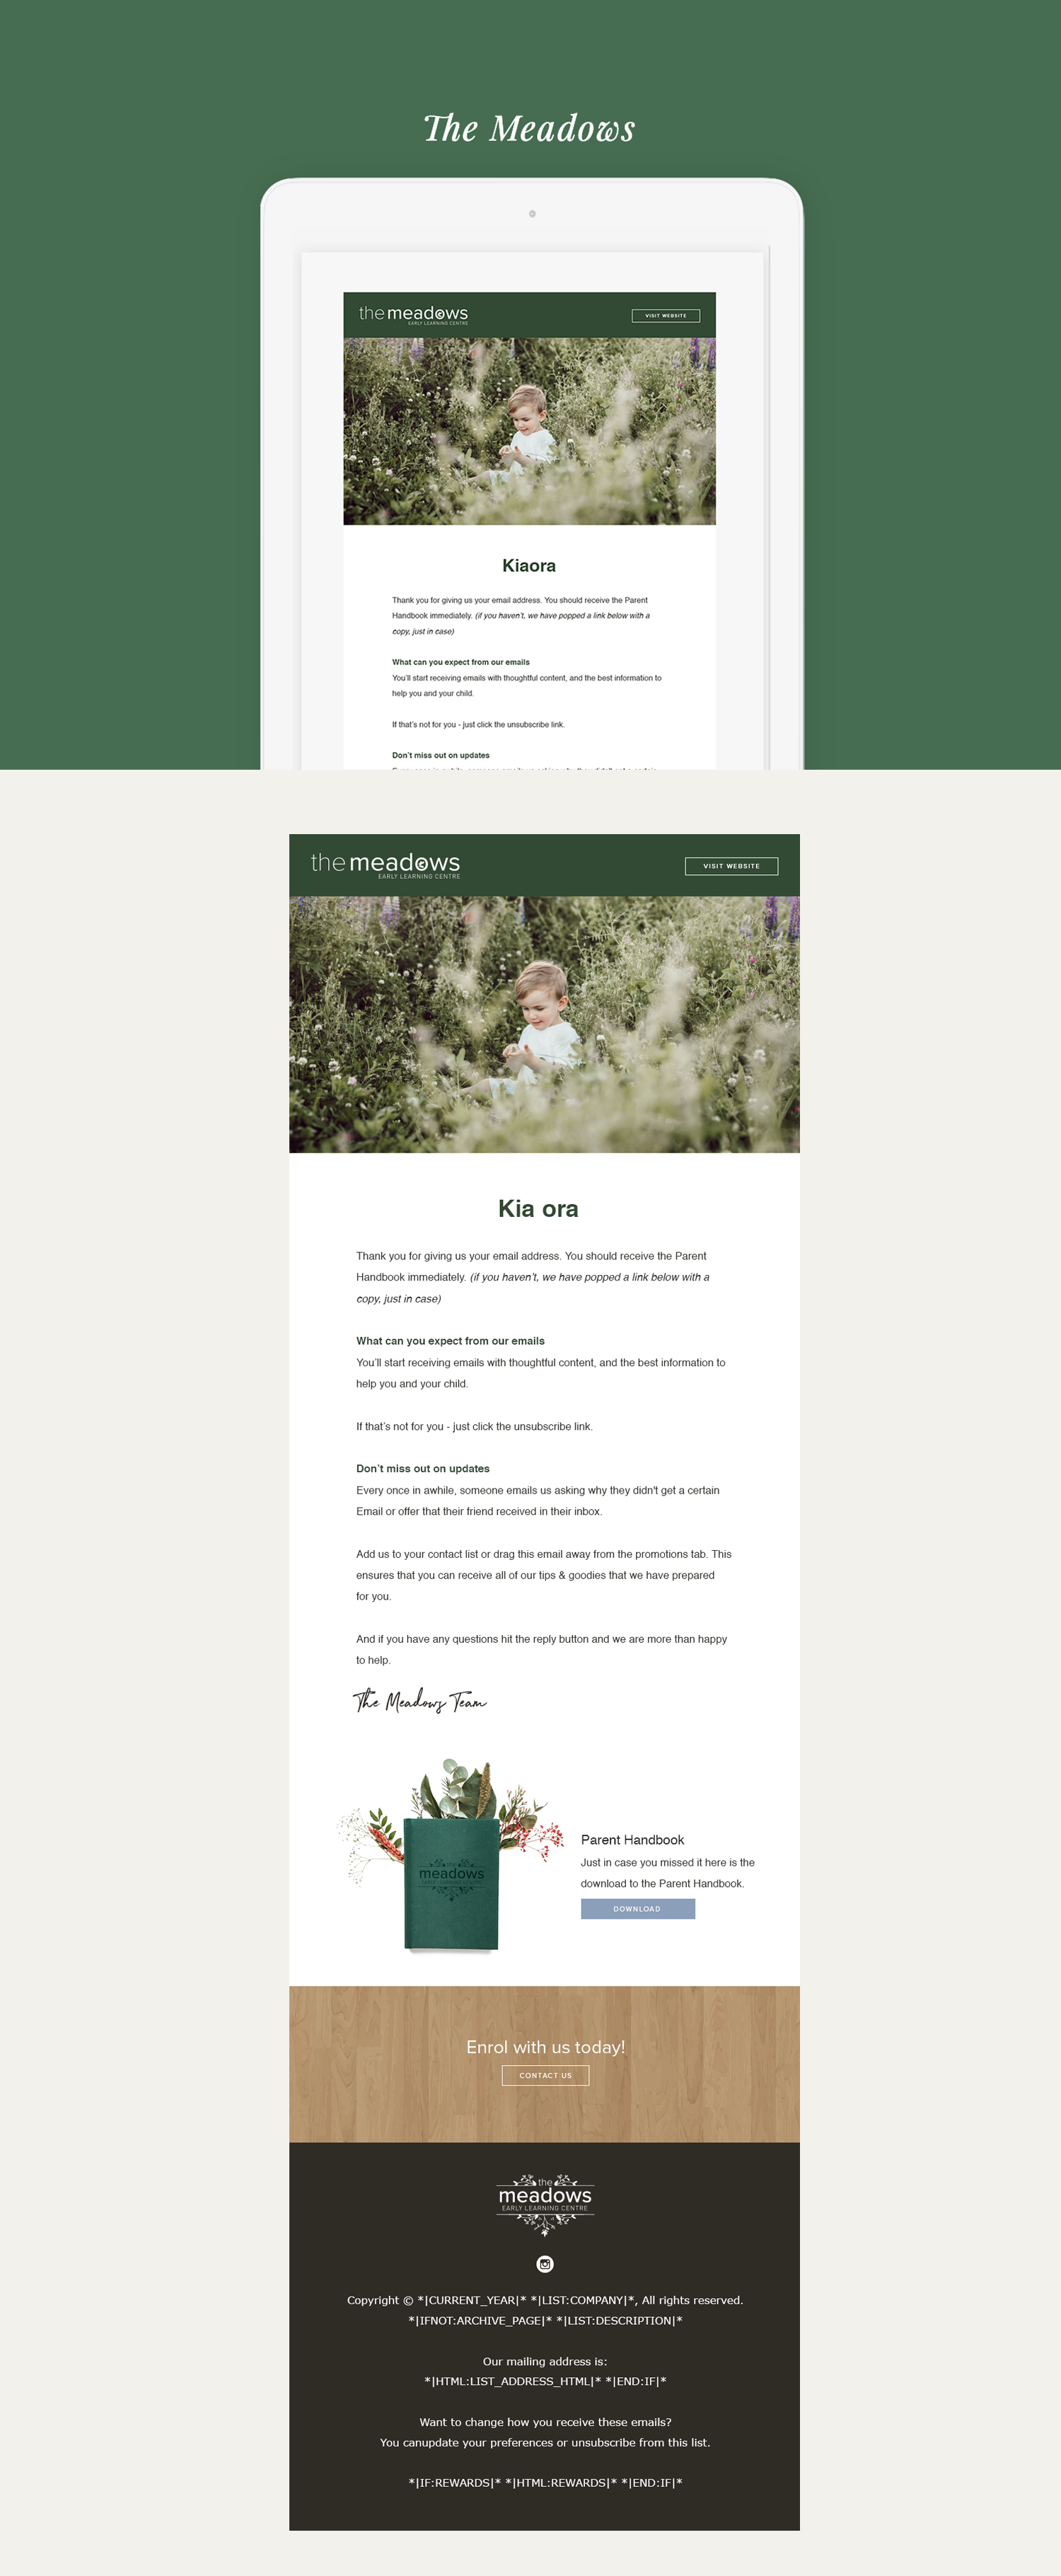 The Meadows mailchimp design Simply Whyte Design branding and squarespace design.png